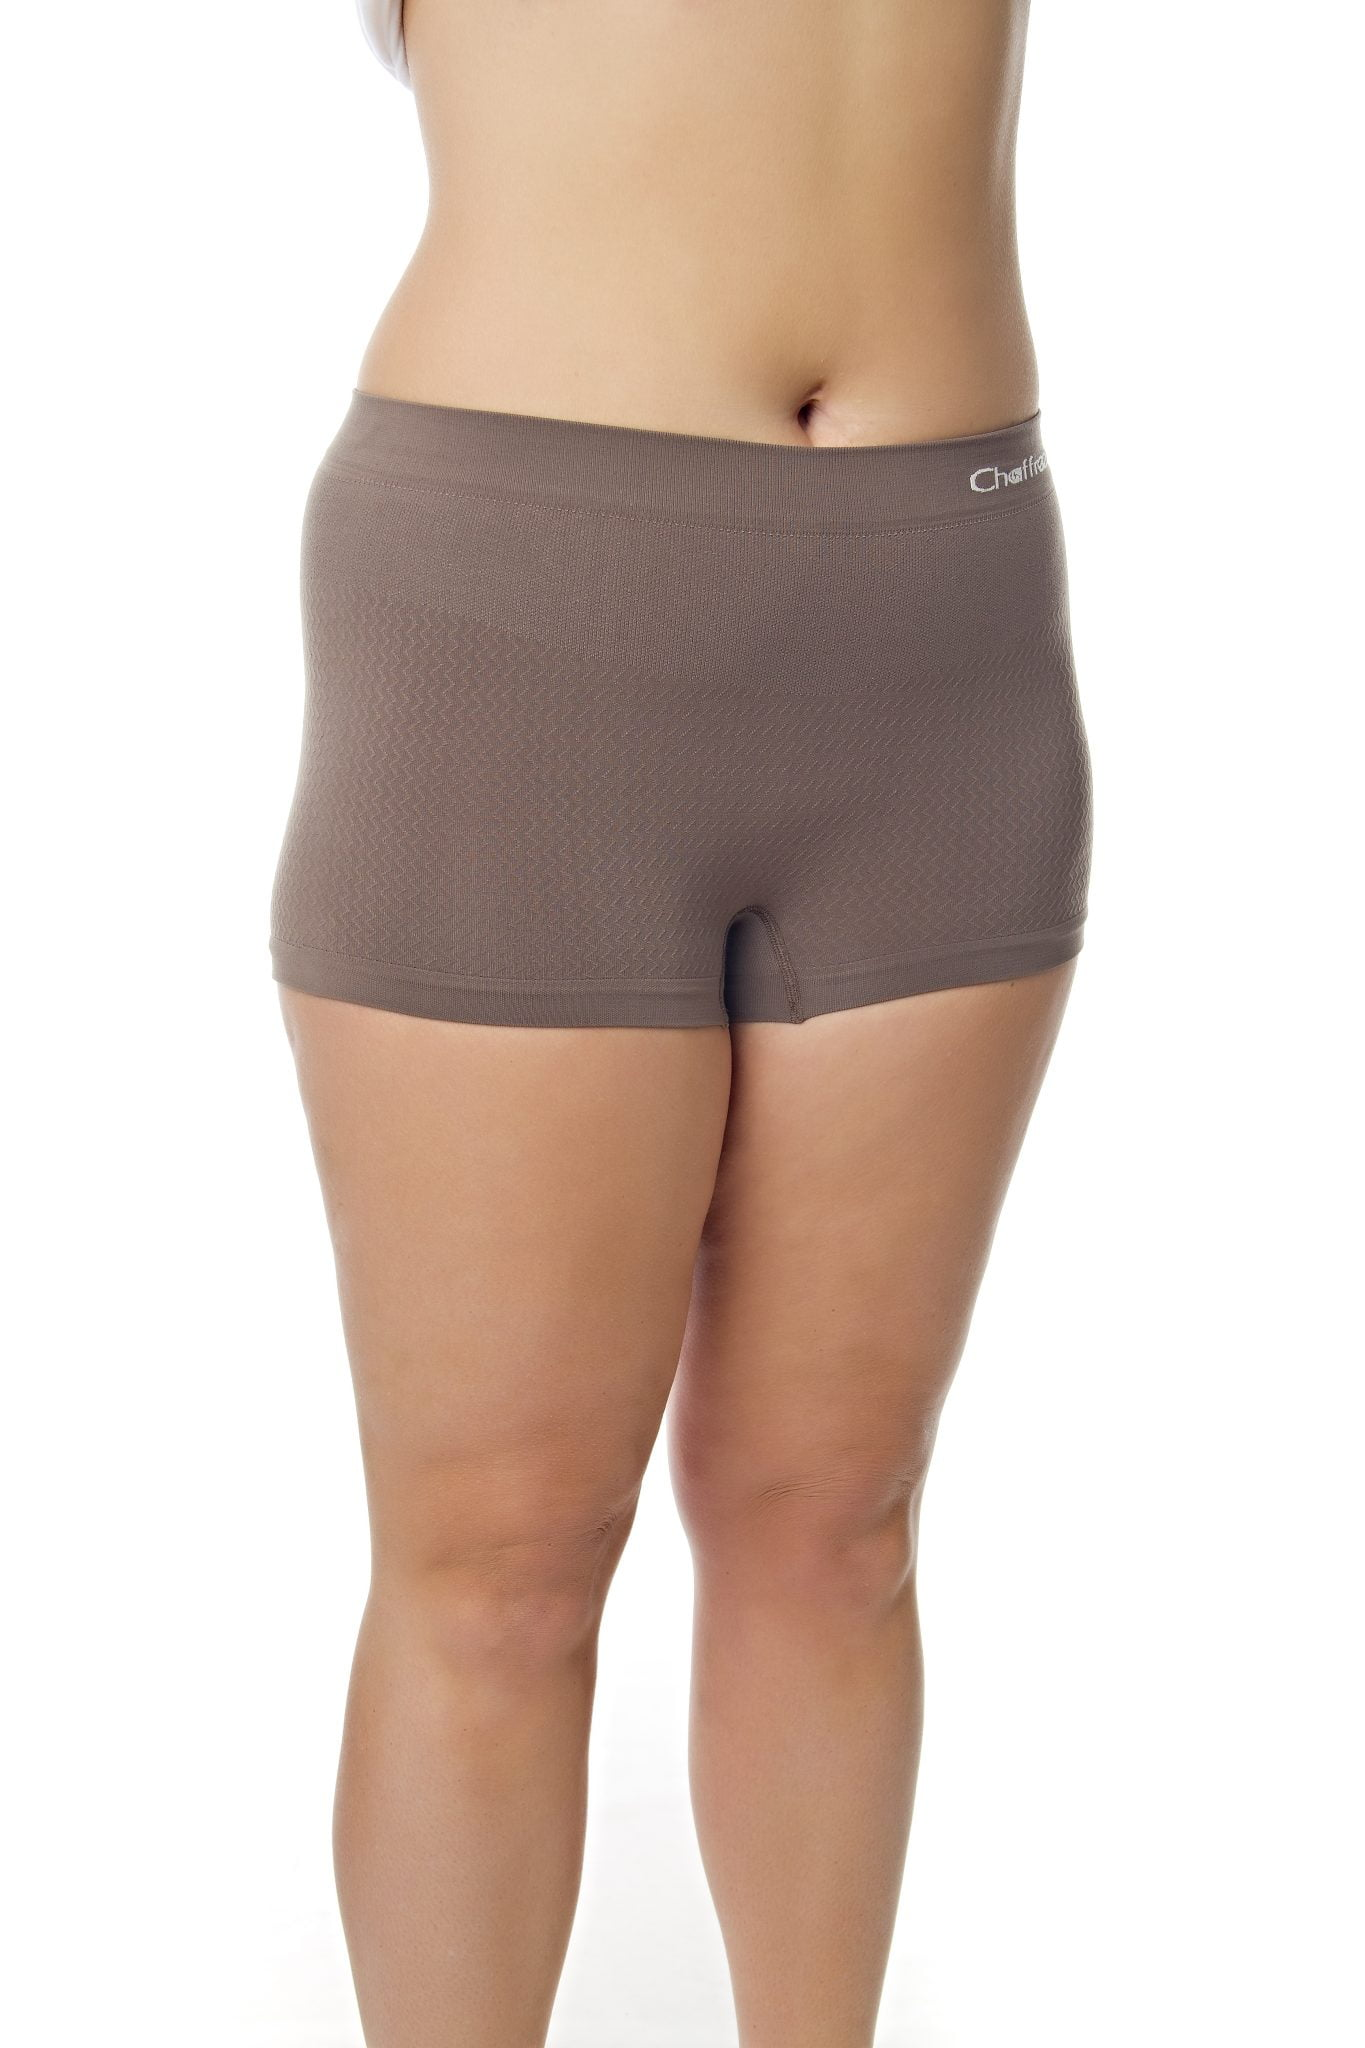 Chaffree boxer shorts for women